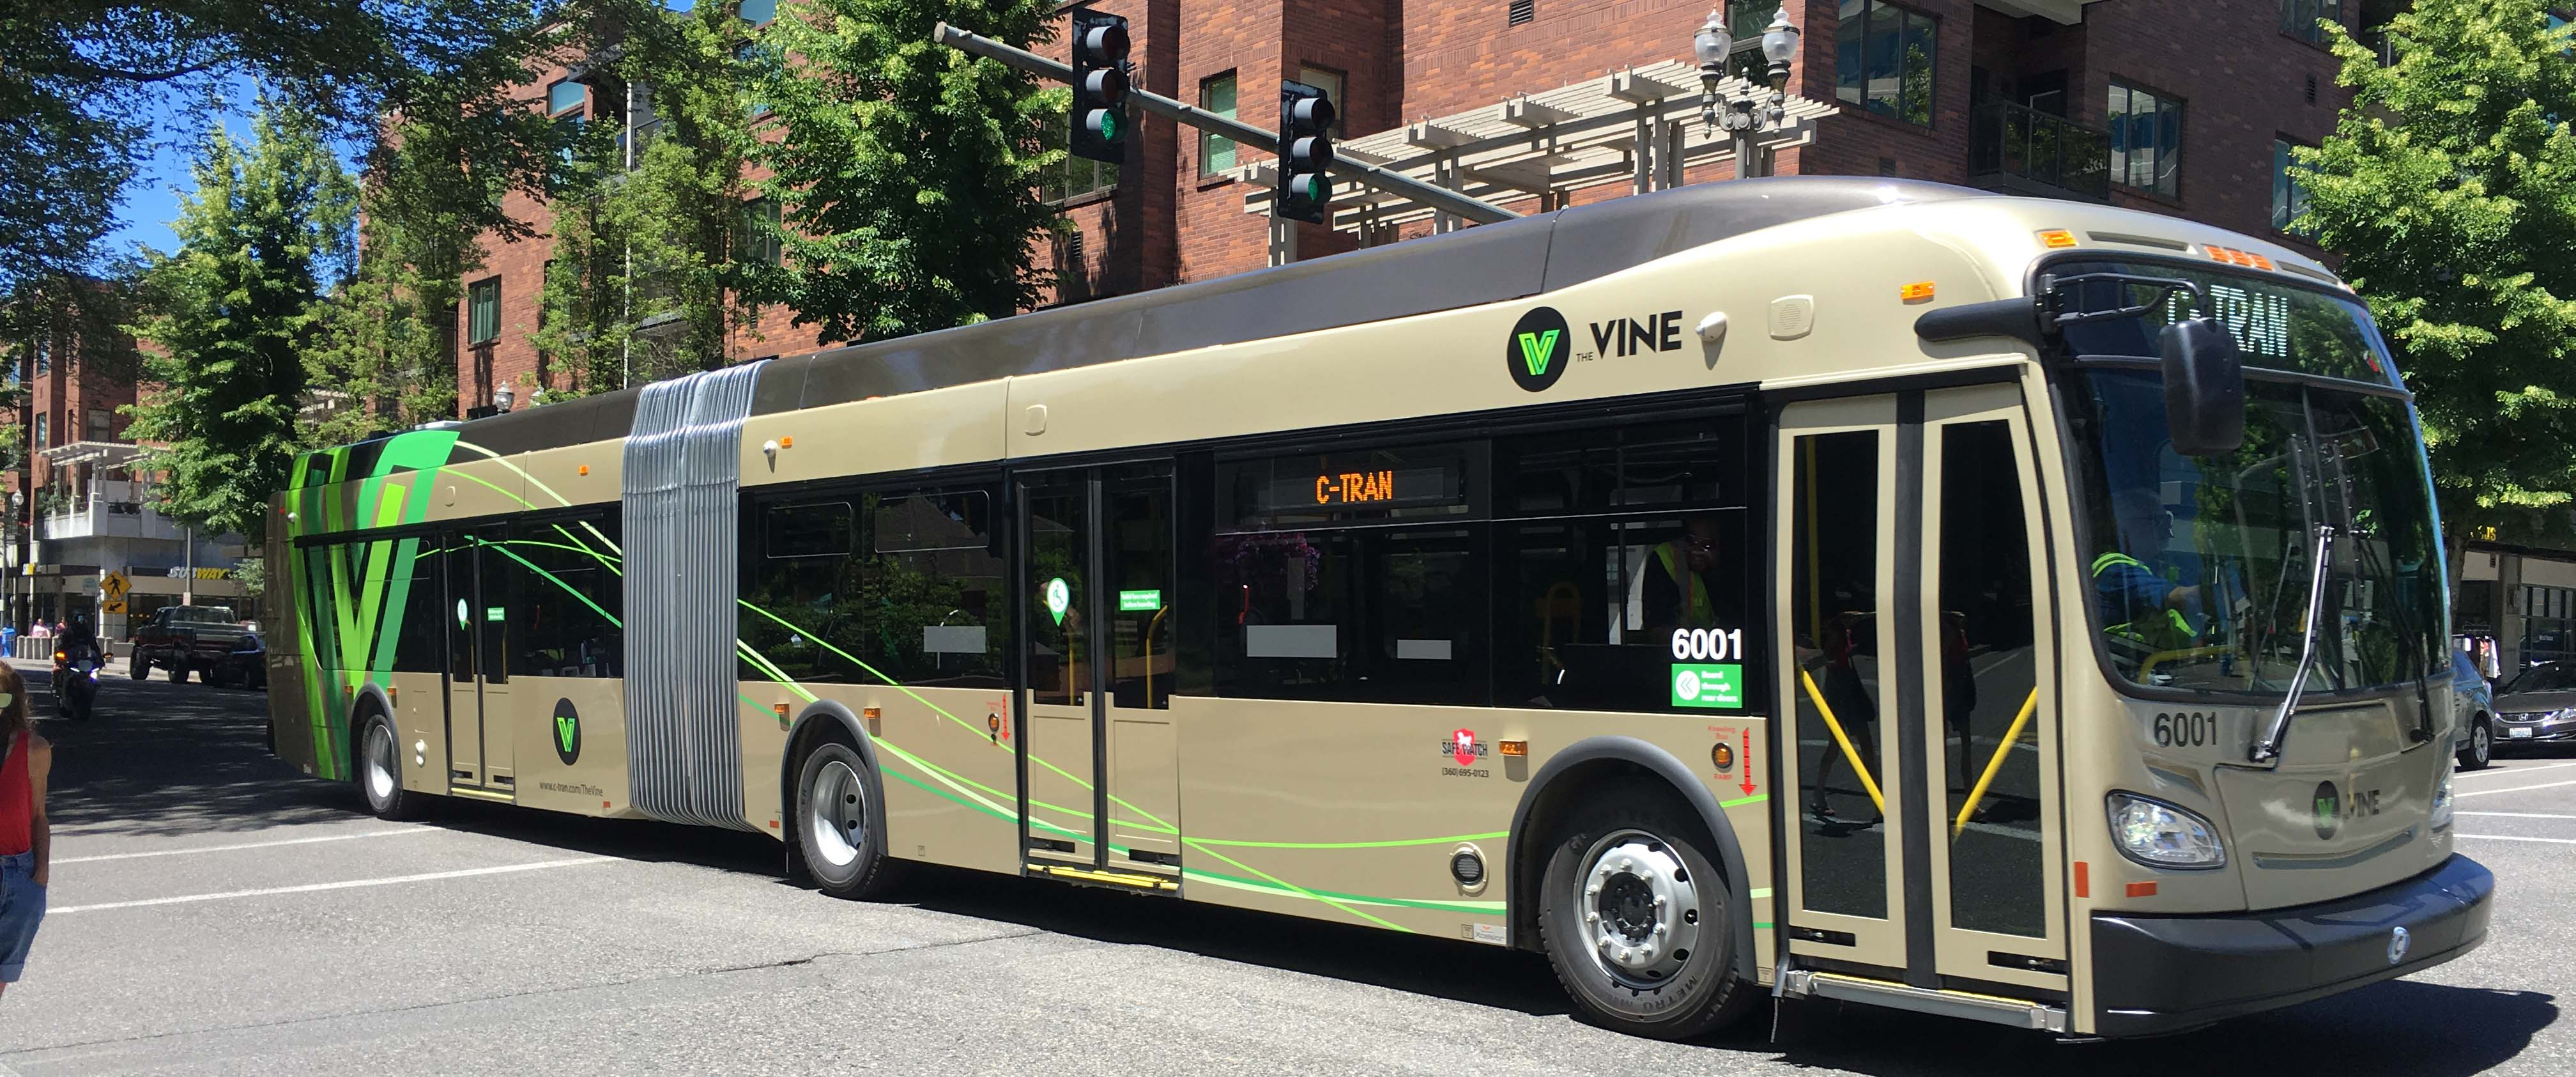 Complete streets CTRAN bus for the VINE City of Vancouver Washington